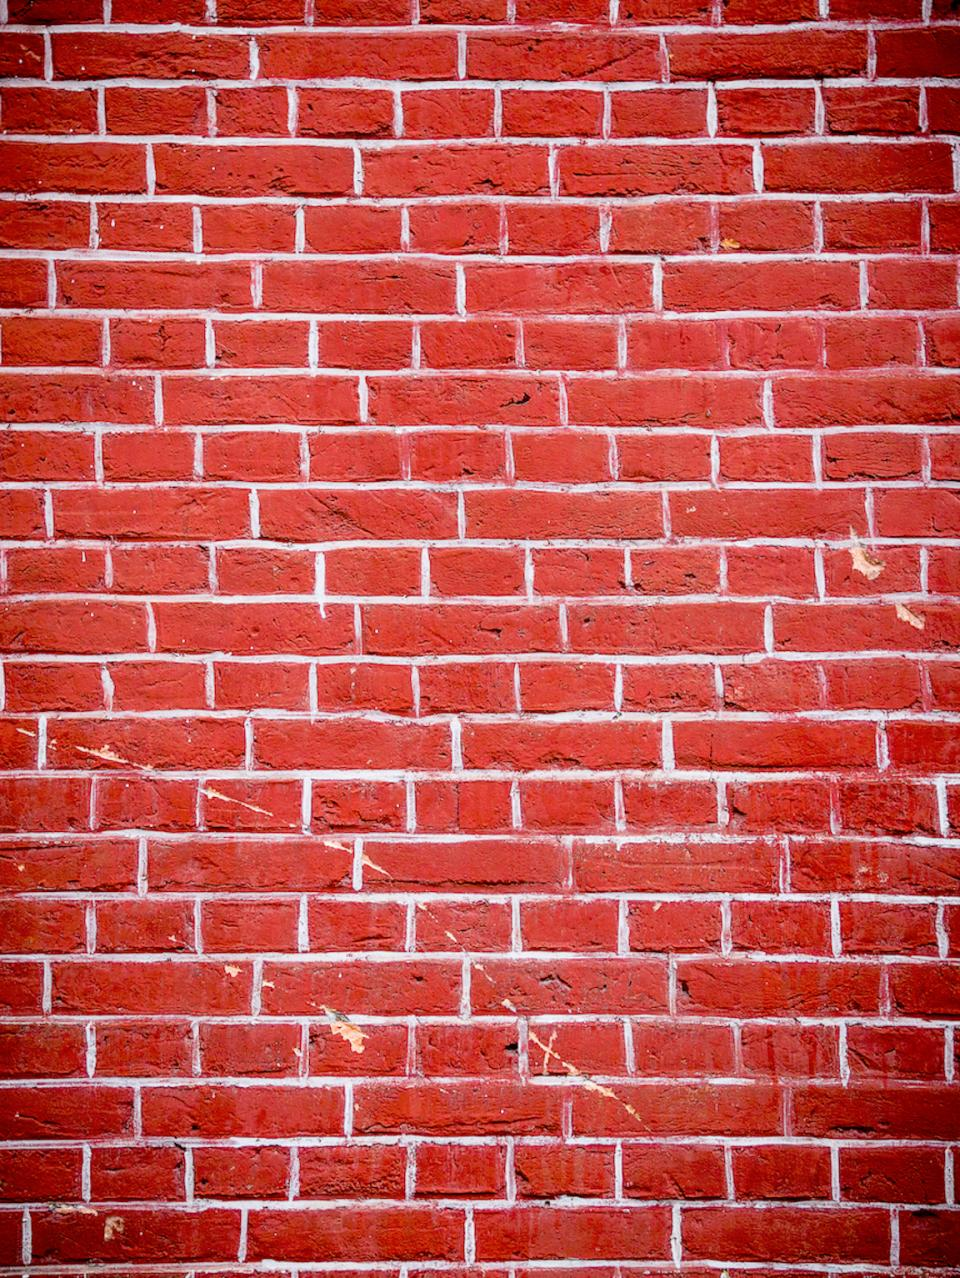 red wall bricks holes cracks